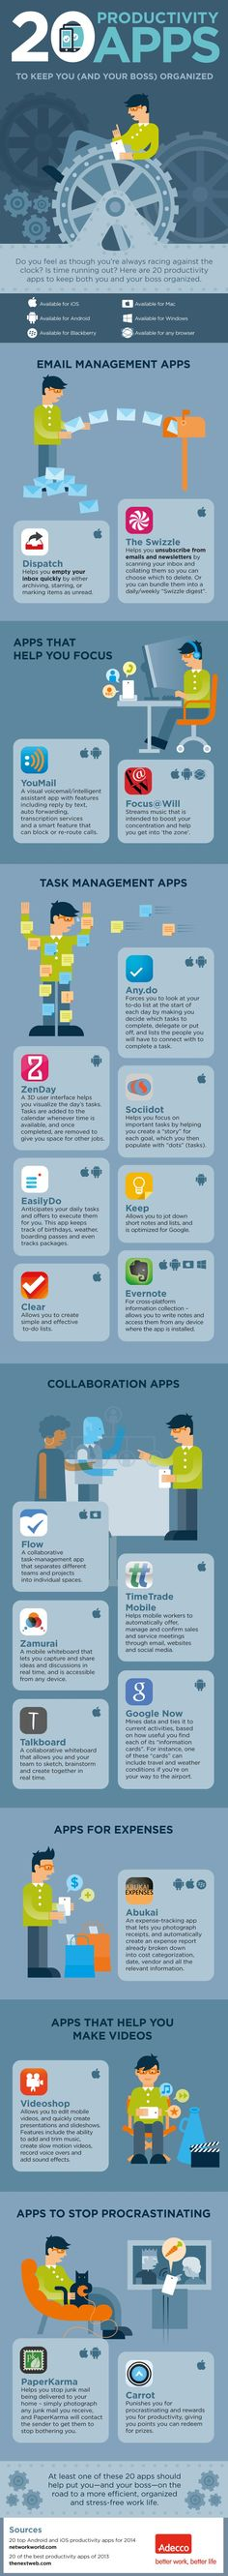 20 Best Productivity Apps List -The Muse #productivity Productivity Tip #productive